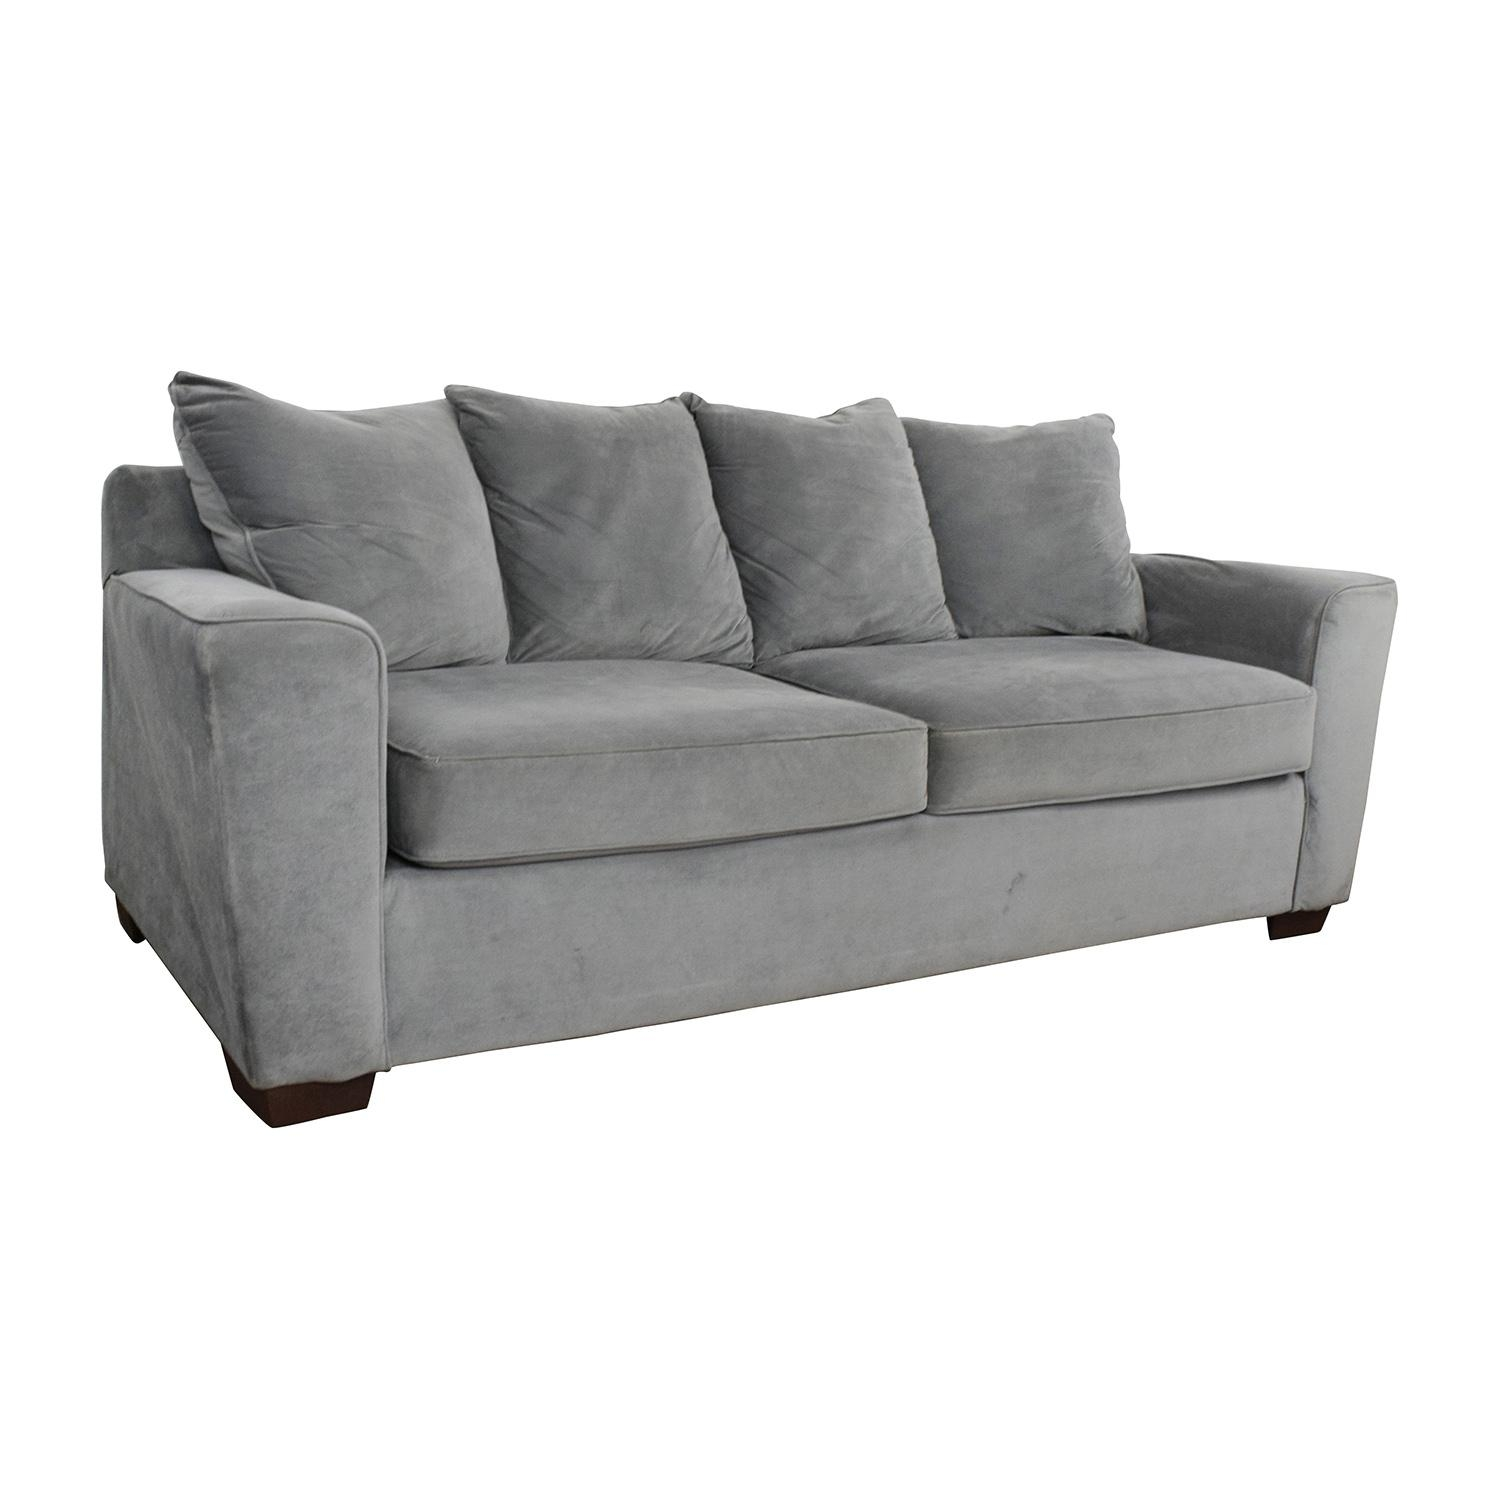 57% Off – Jennifer Convertibles Jennifer Convertibles Grey Couch Intended For Jennifer Sofas (View 12 of 20)